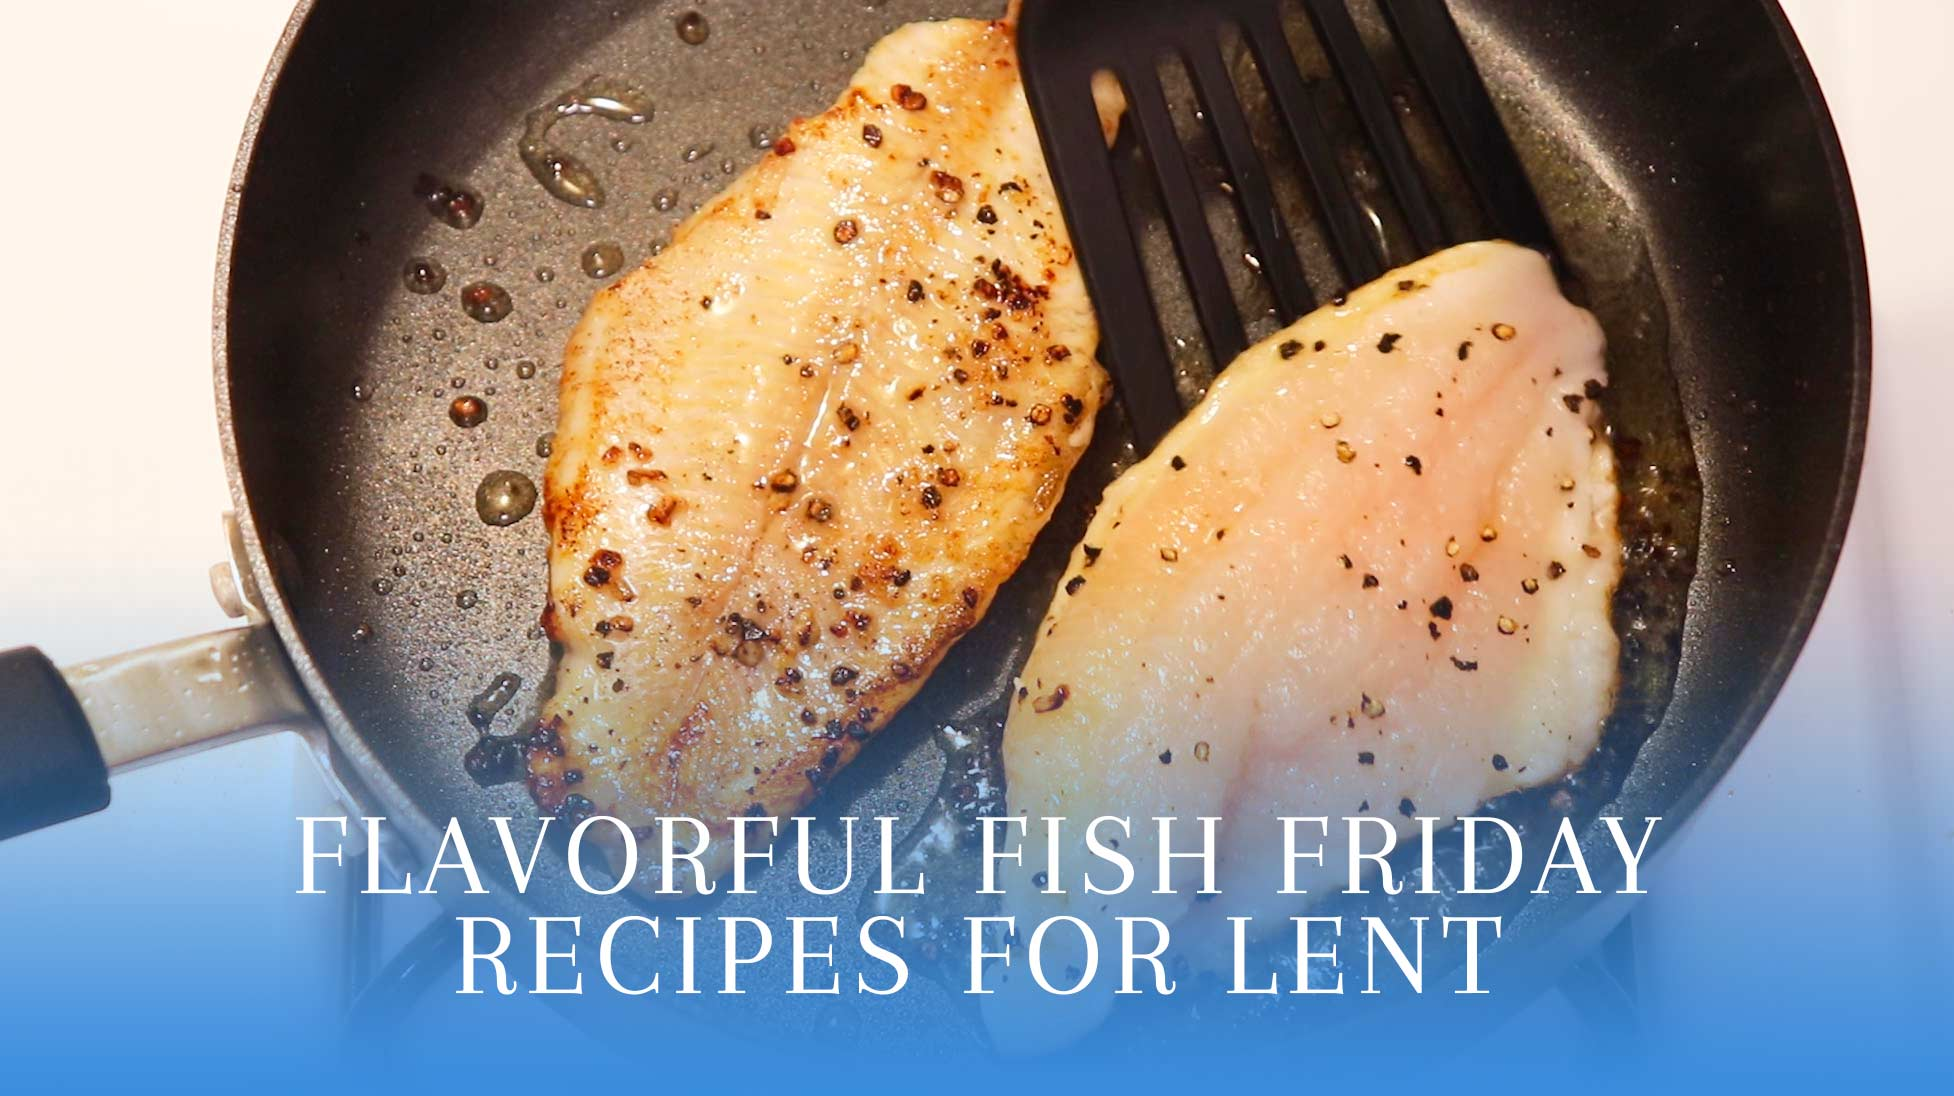 Flavorful Fish Friday Recipes for Lent